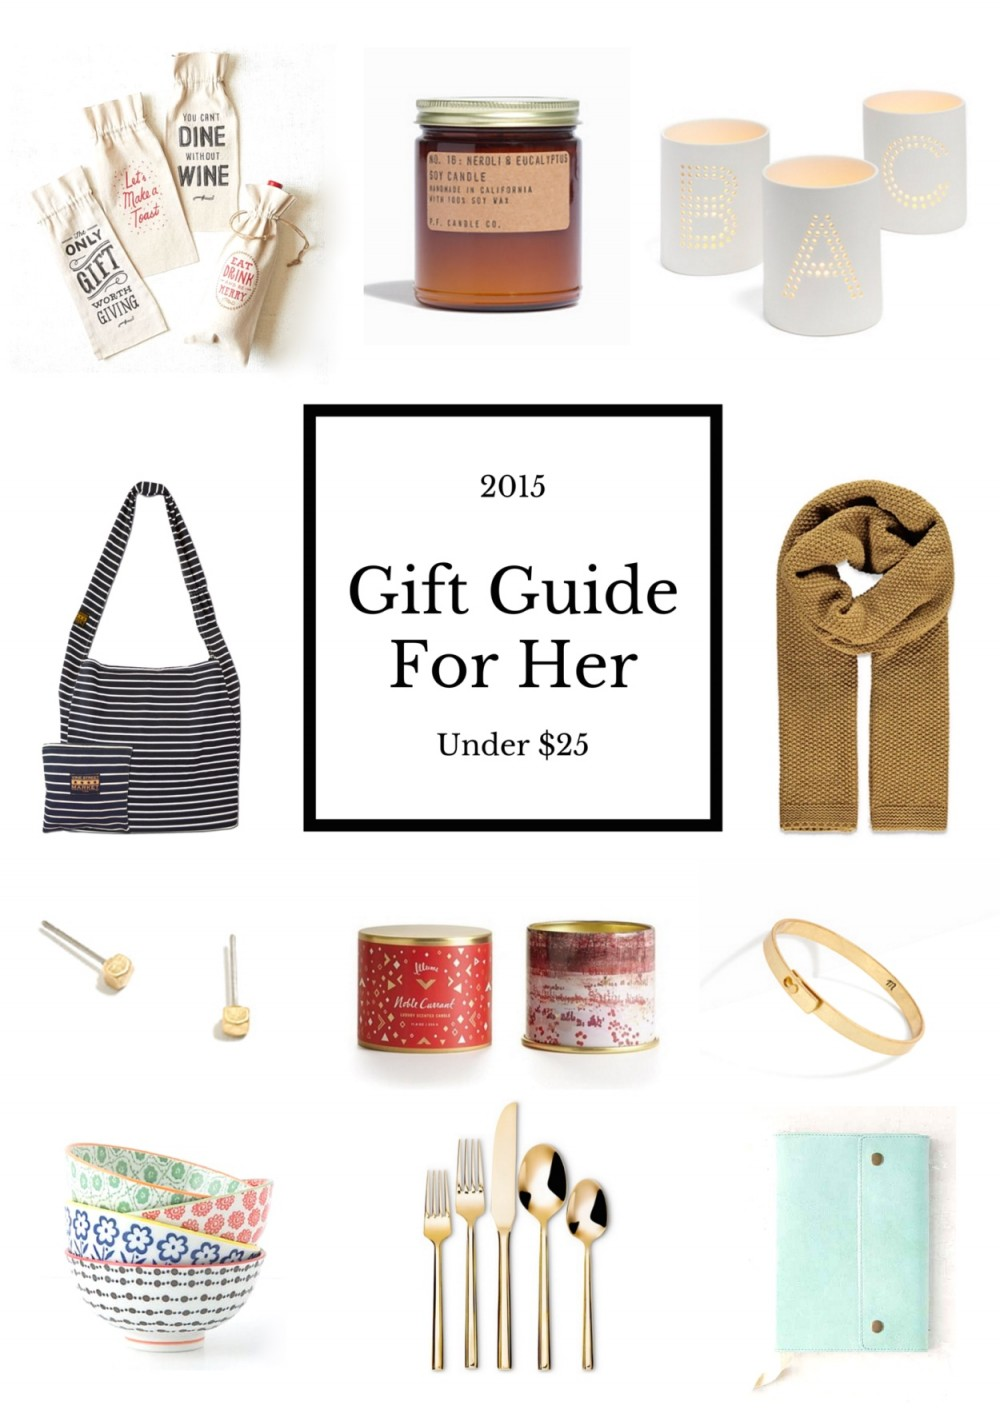 2015 Gift Guide For Her - $25 And Under